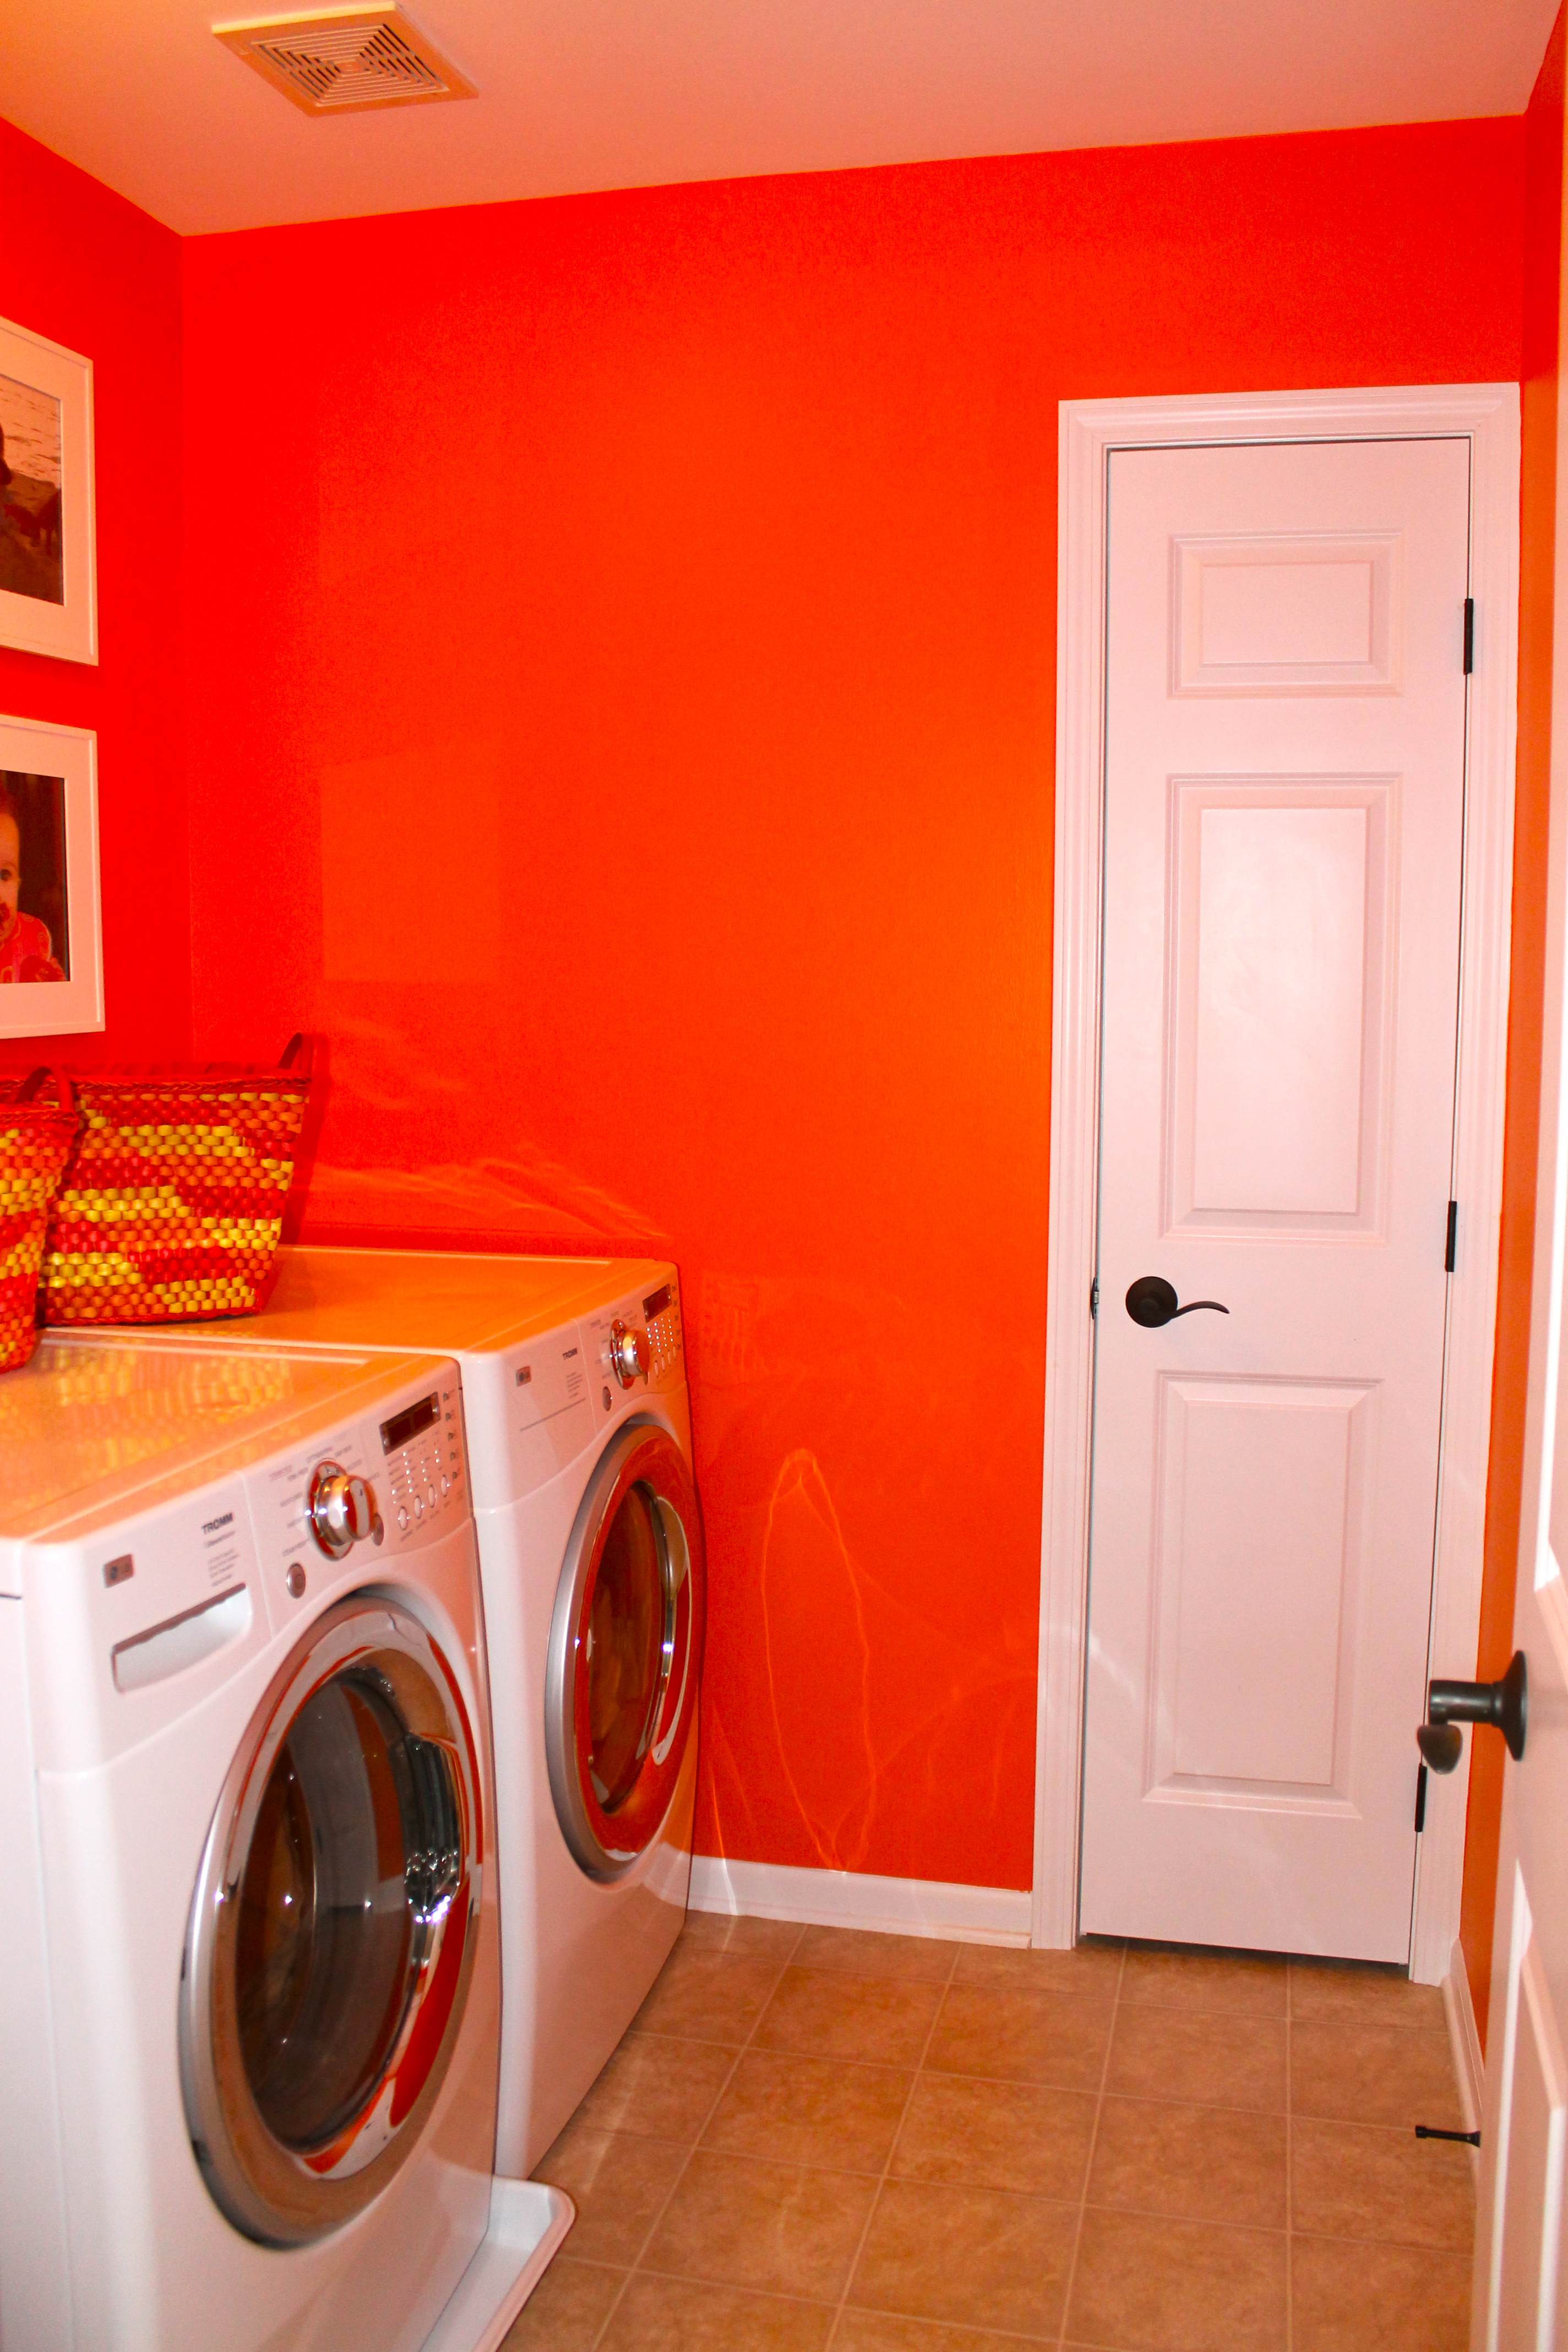 List Of Synonyms And Antonyms The Word Neon Orange Paint Colors